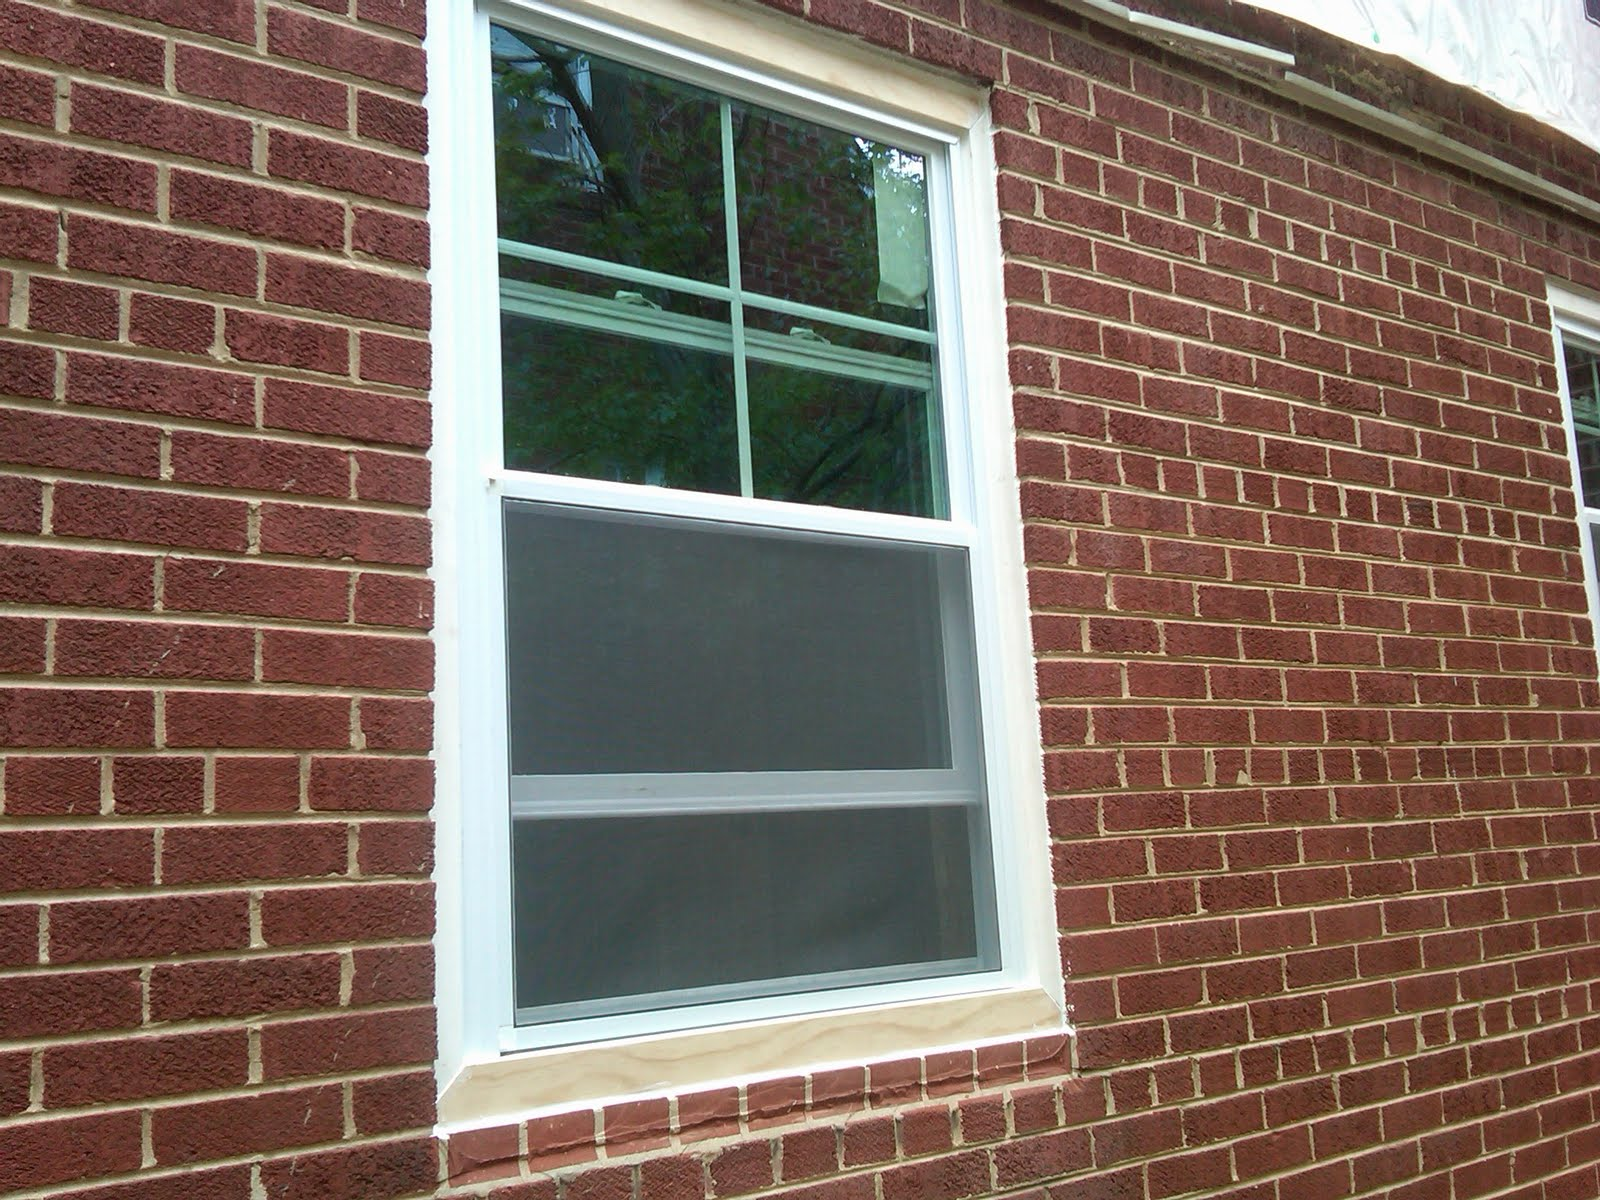 Exterior window trim - Trim The Outside And Then Caulk It To Make Sure It S All Water Tight We Used 1x2 And 1x3 To Trim This Out The Brick Sill Was Shaved Down To Make It